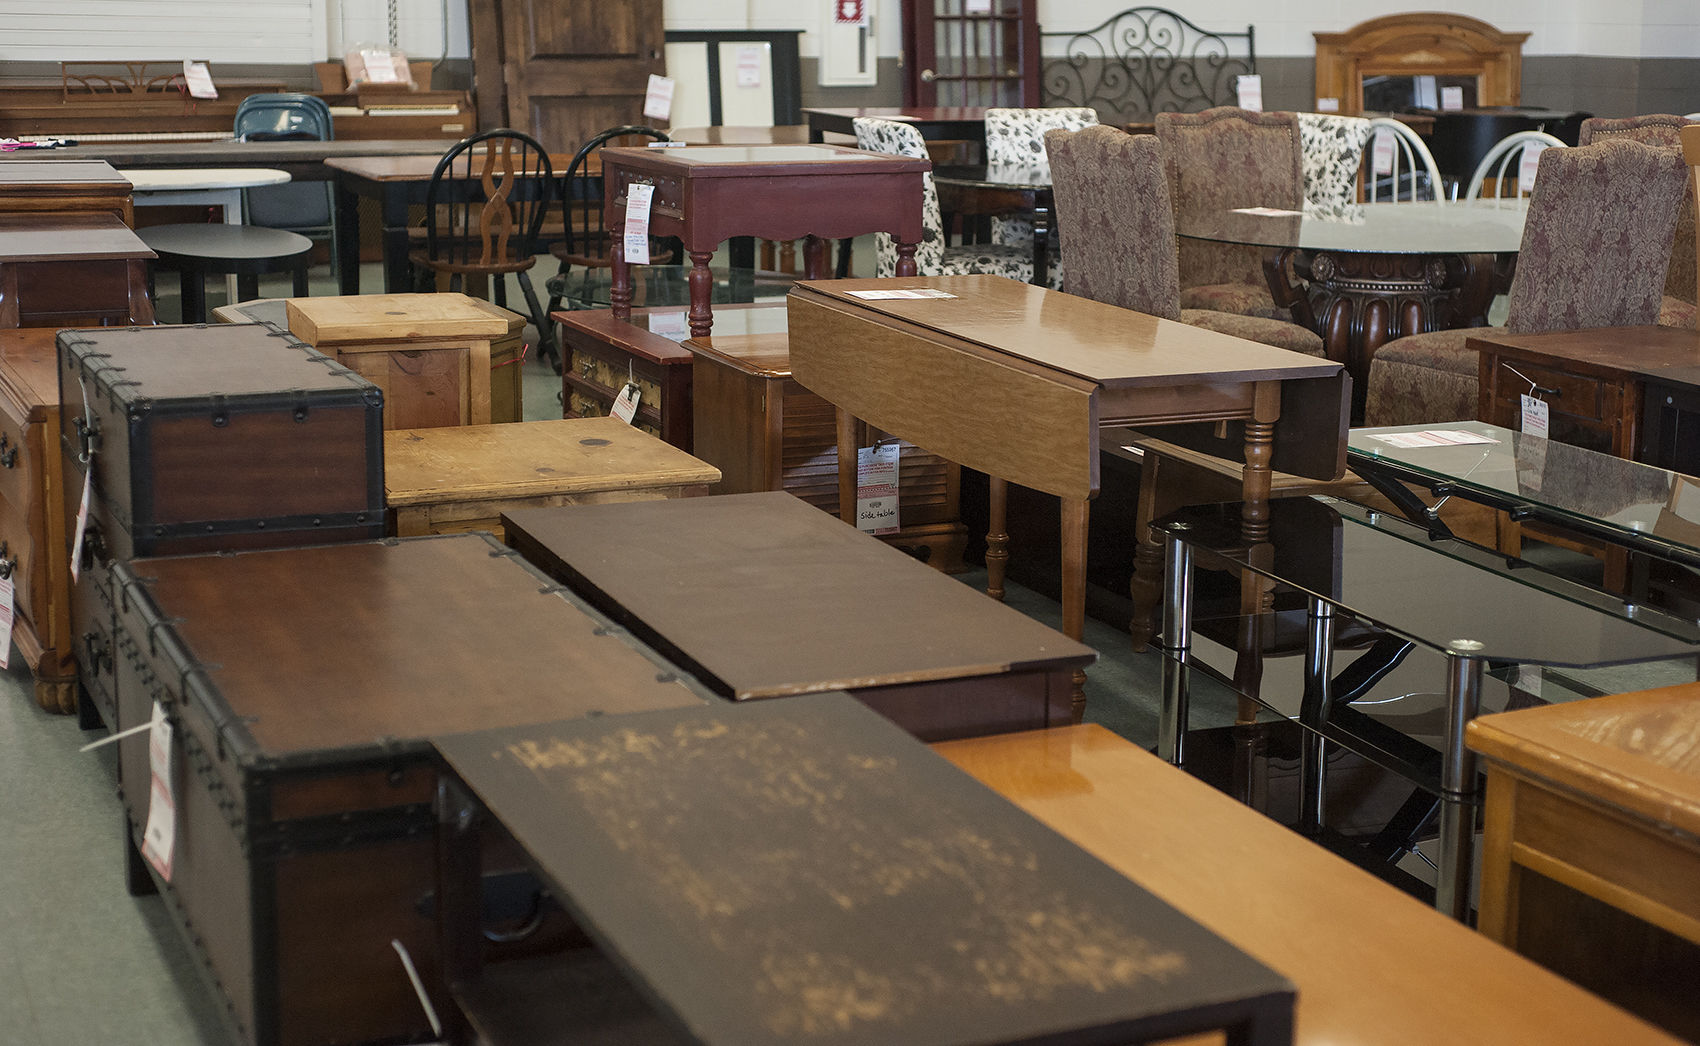 CCC Sale Opens To Public Thursday At Harvey Convention Center; Clothes,  Toys, Furniture And More Among The Offerings | Family | Tylerpaper.com